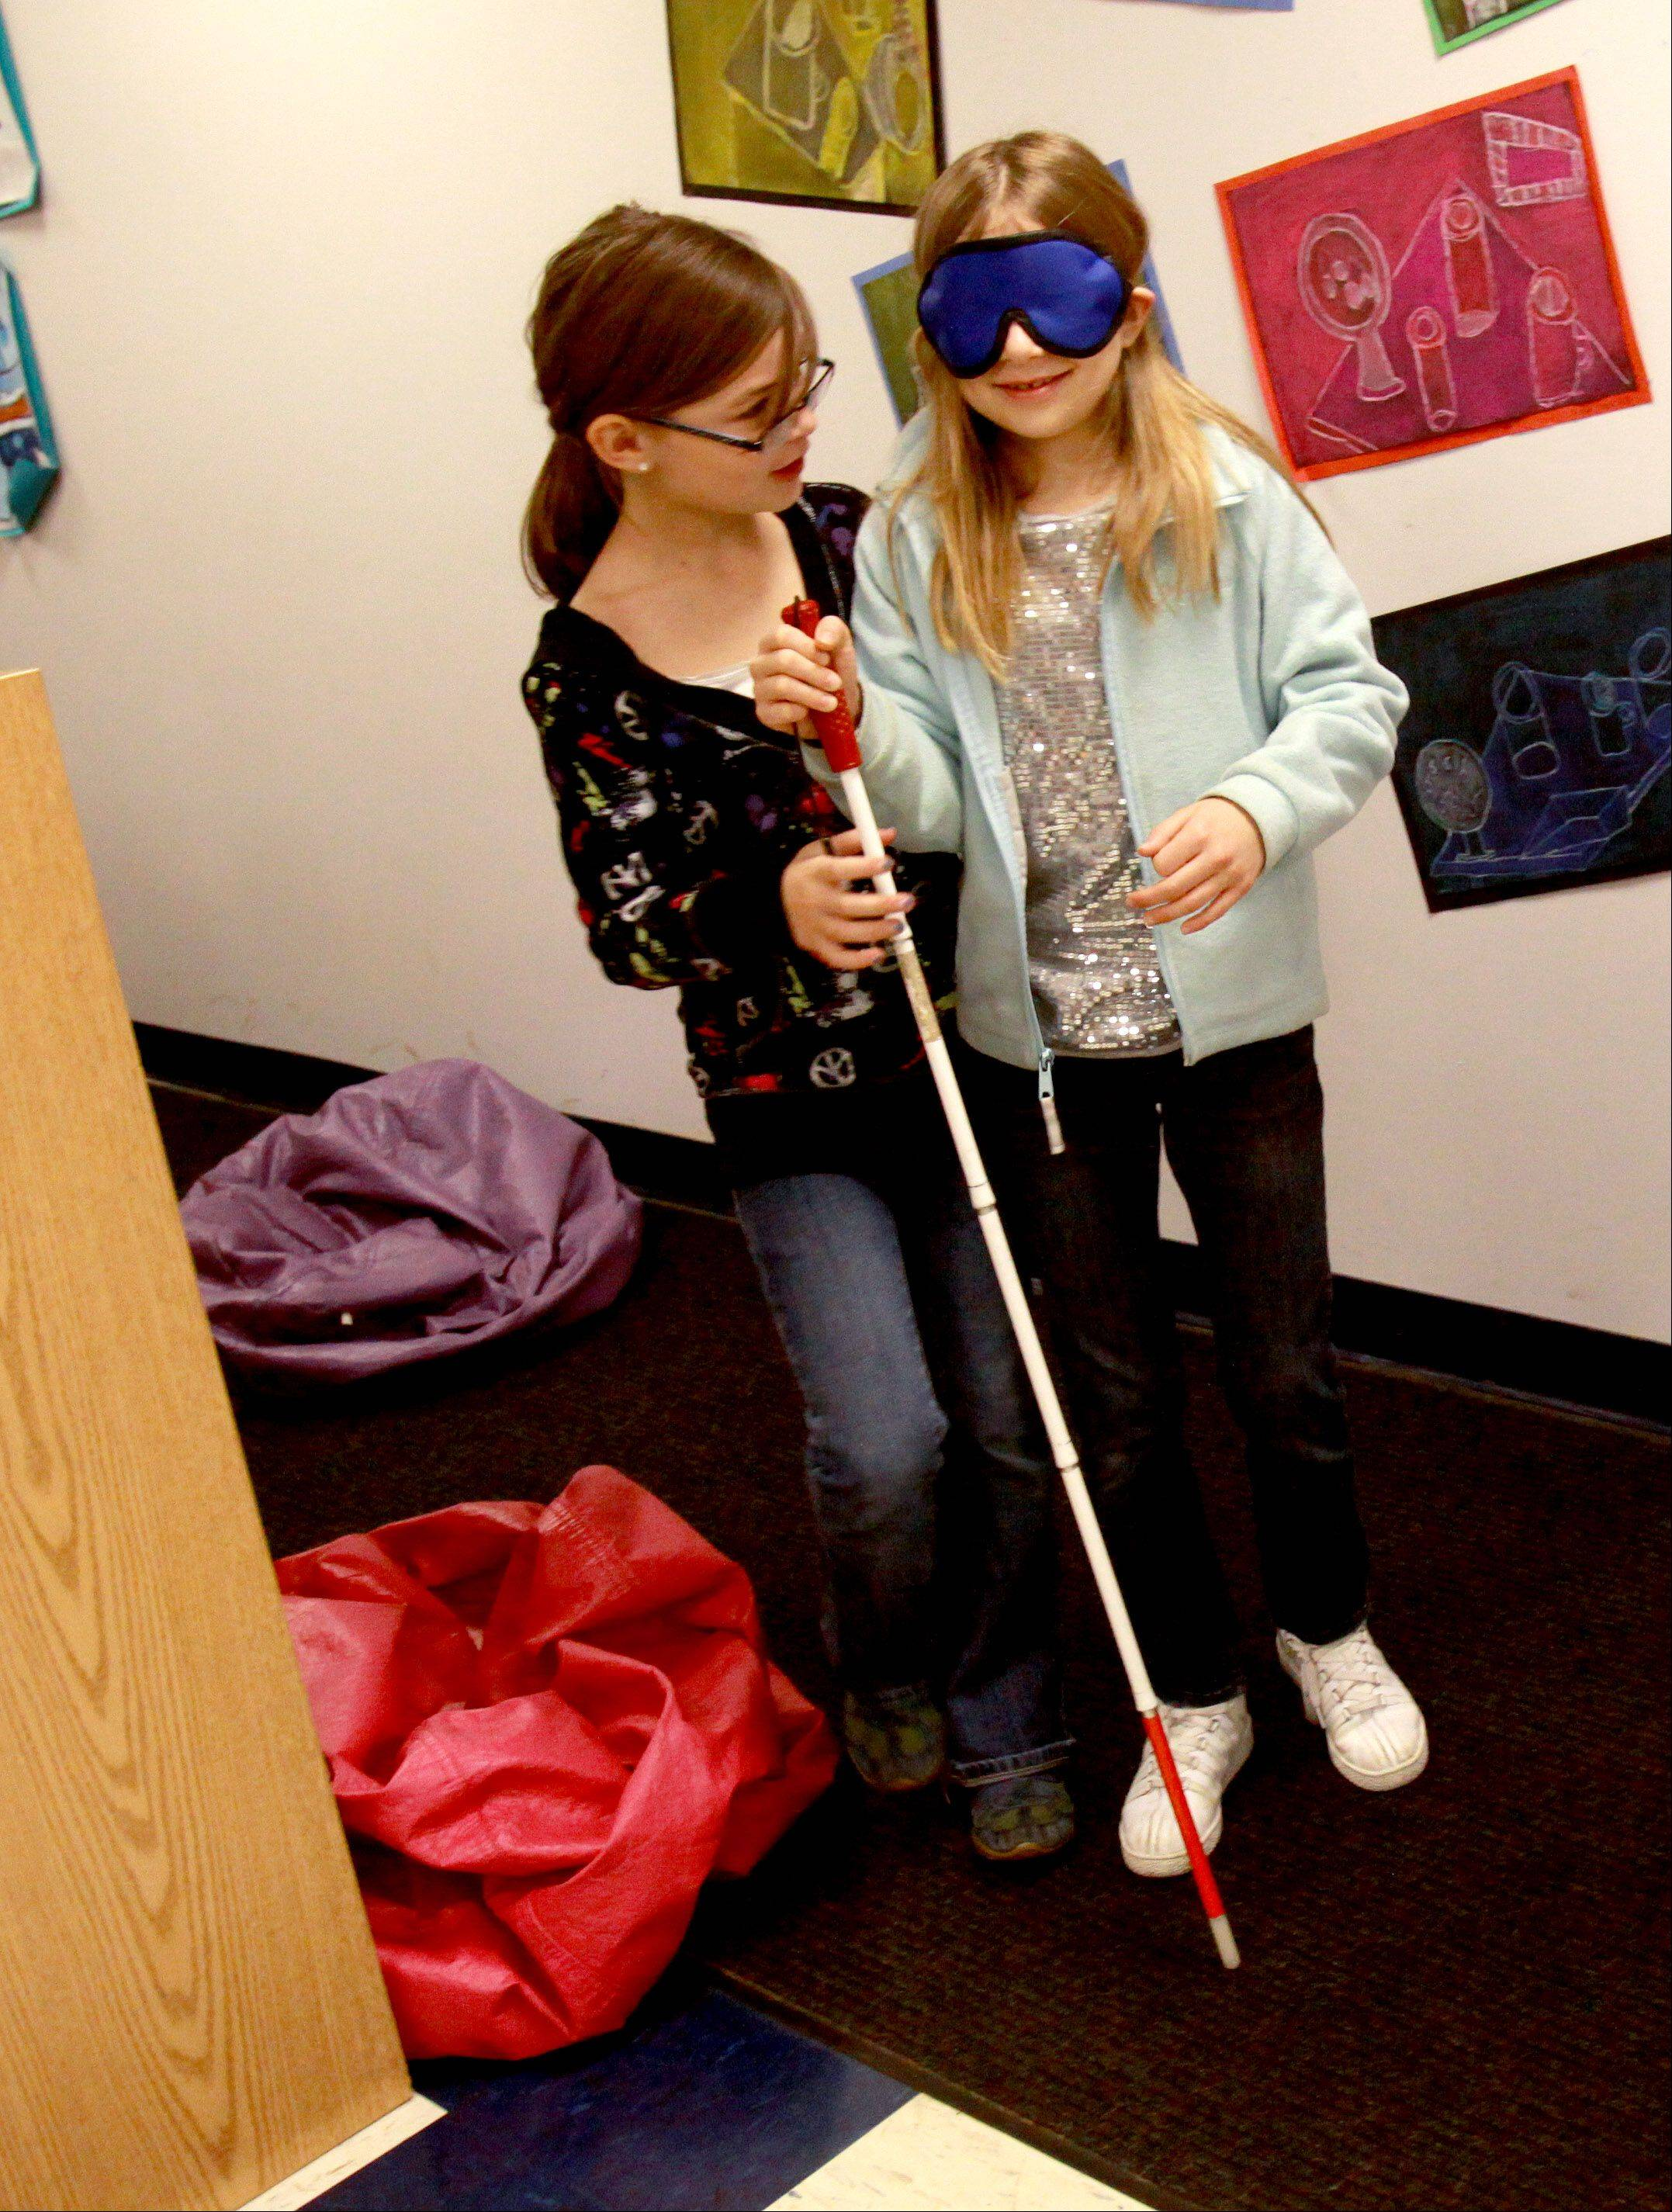 Grace Elliott, left, helps fellow third-grader Jane Sottrel as she makes her way with a blindfold to experience a bit of what it might be like to have vision loss. The activity is part of the Western DuPage Special Recreation Association's Disability Awareness Program.